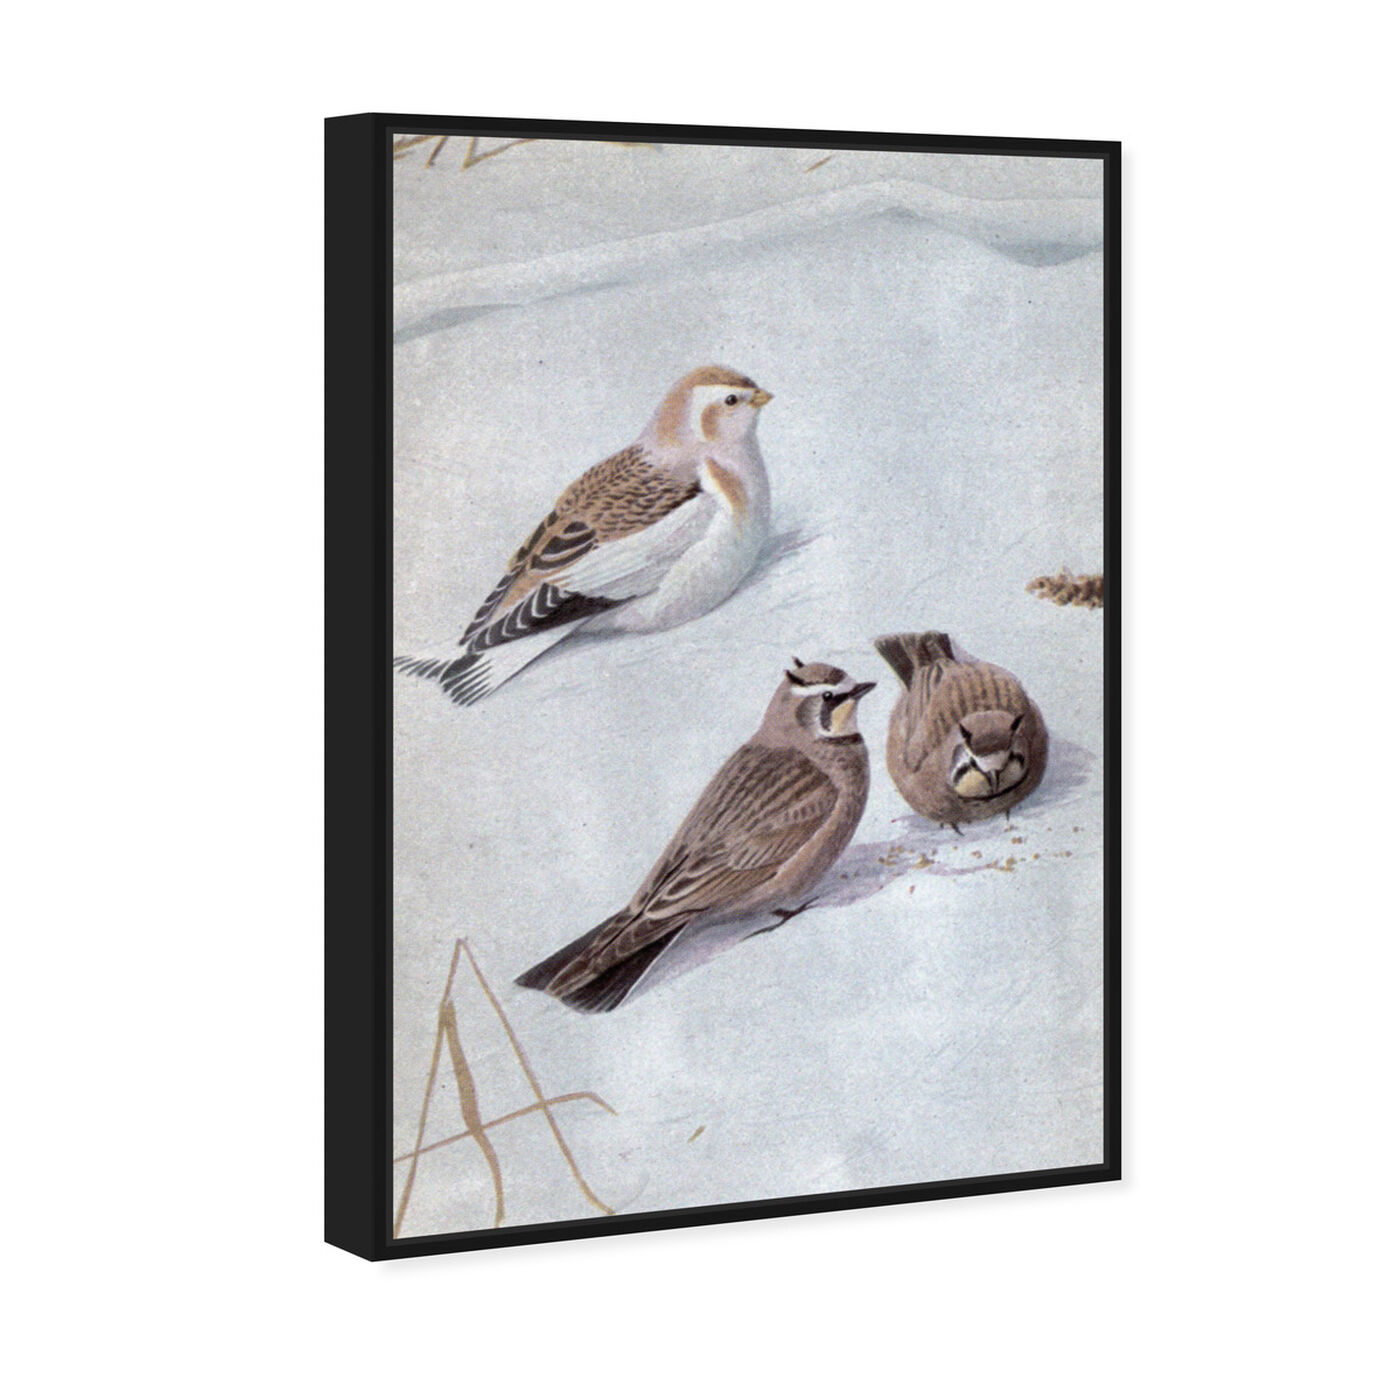 Angled view of Birds in the Snow featuring animals and birds art.